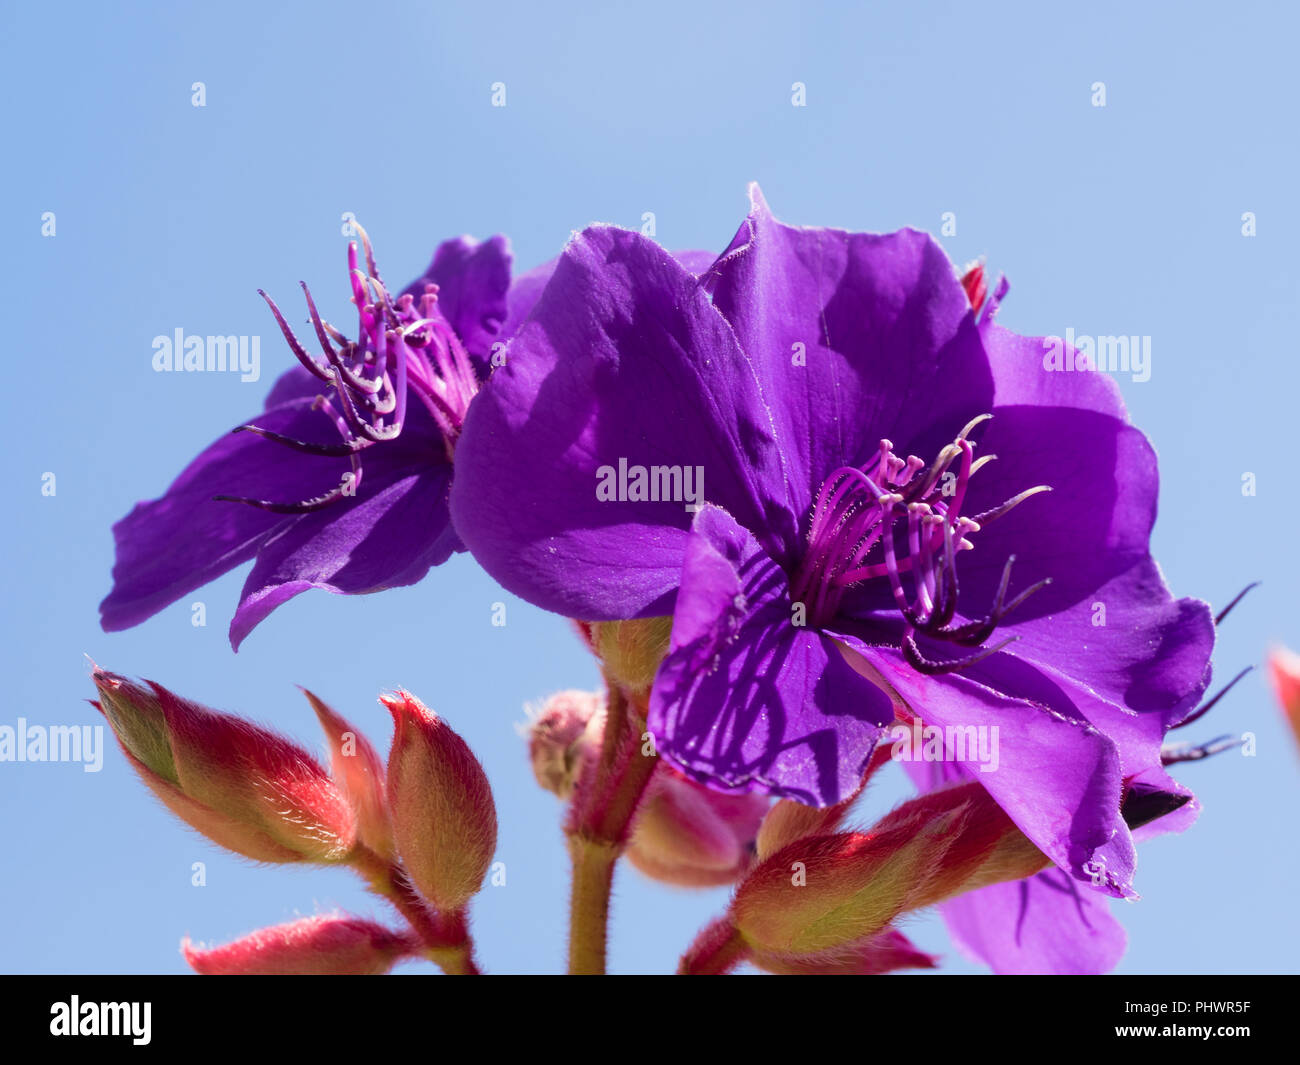 Exotic purple flowers of the autumn to winter blooming princess flower, Tibouchina semidecandra - Stock Image